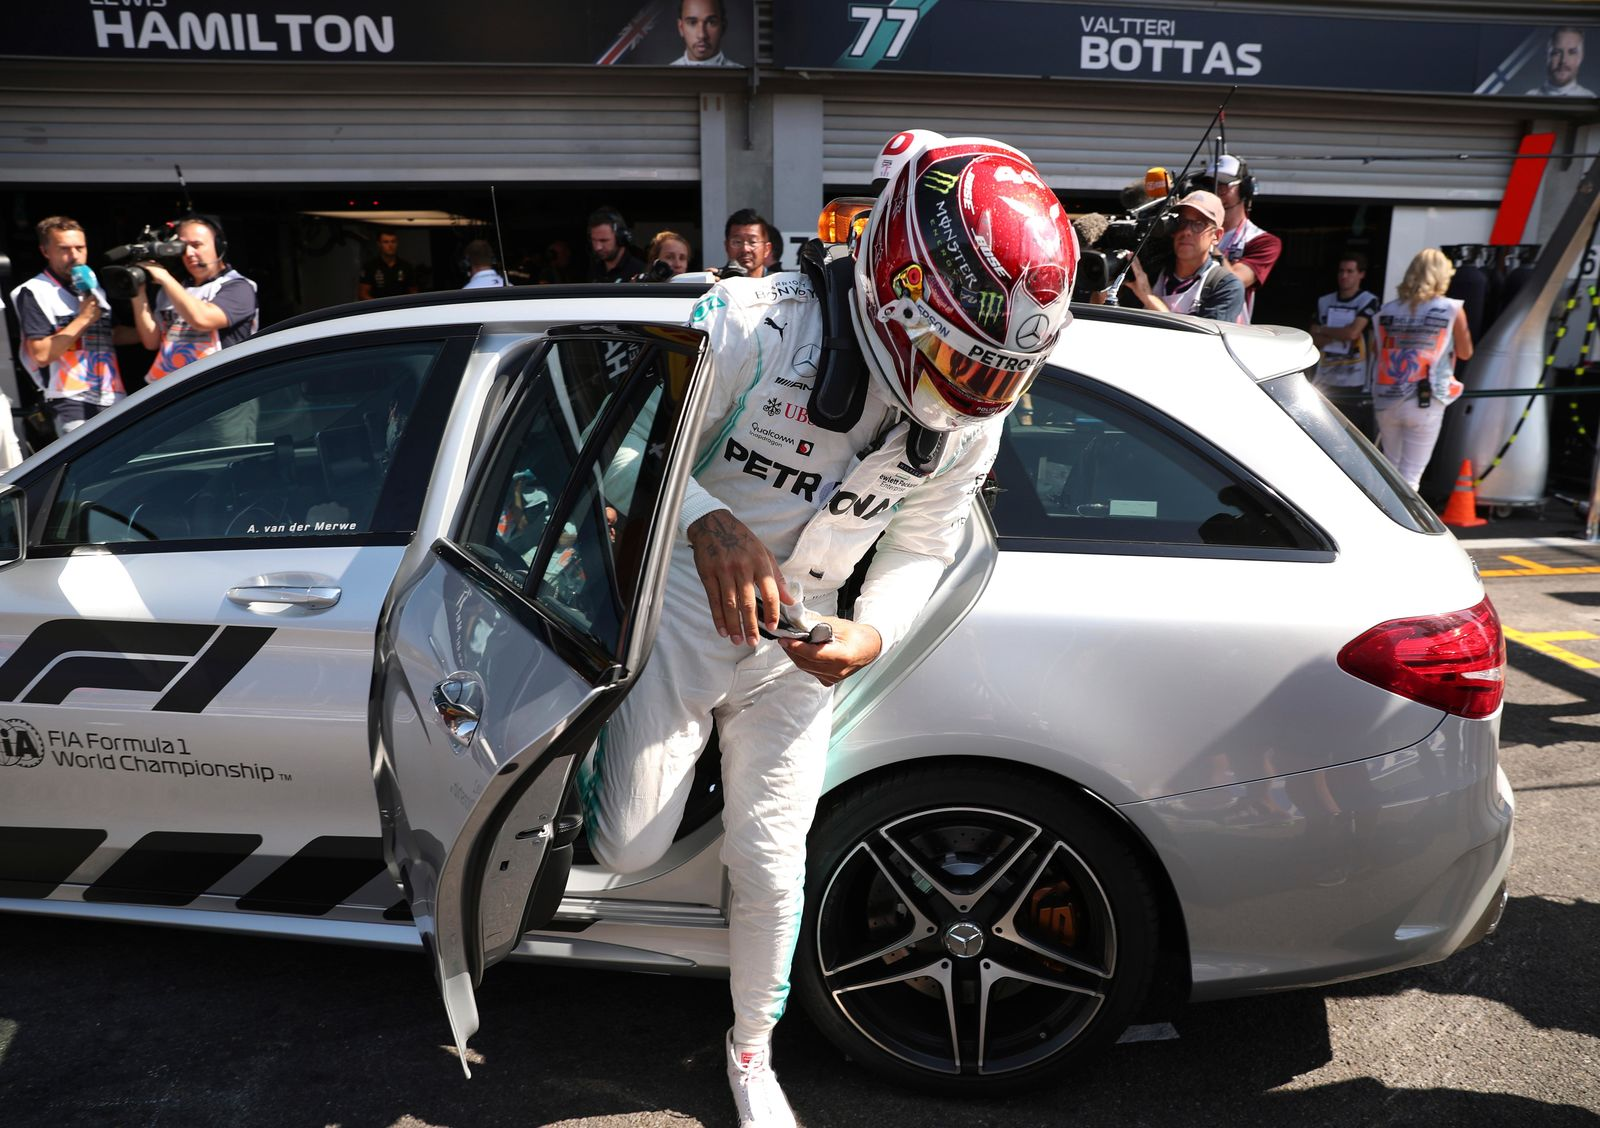 Mercedes driver Lewis Hamilton of Britain gets out of the team car after his car hit a barrier during the third practice session ahead of the Belgian Formula One at Spa-Francorchamps, Belgium, Saturday, Aug. 31, 2019. The Belgian Formula One race will take place on Sunday. (AP Photo/Francisco Seco)